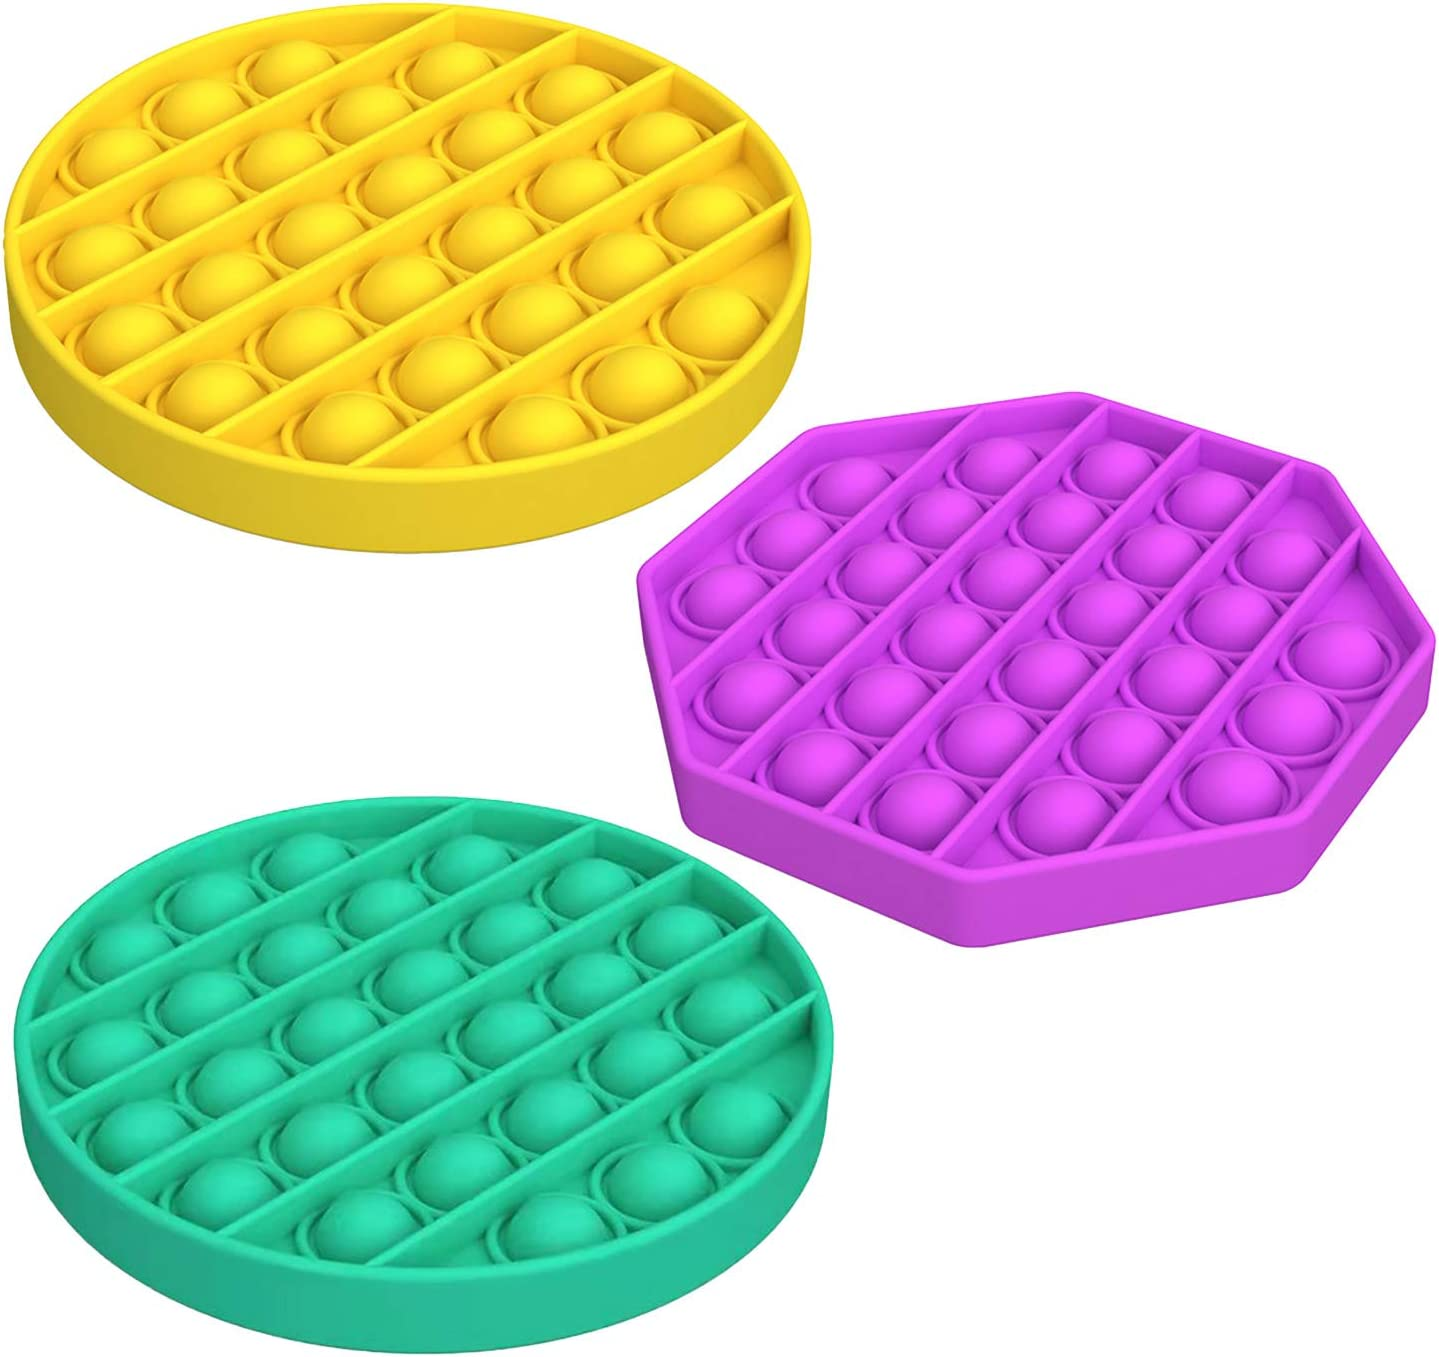 Warju Cheap Push Pop Bubble Fidget Toys 3 Pack, Tactile Logic Game, Great for Kids and Adults